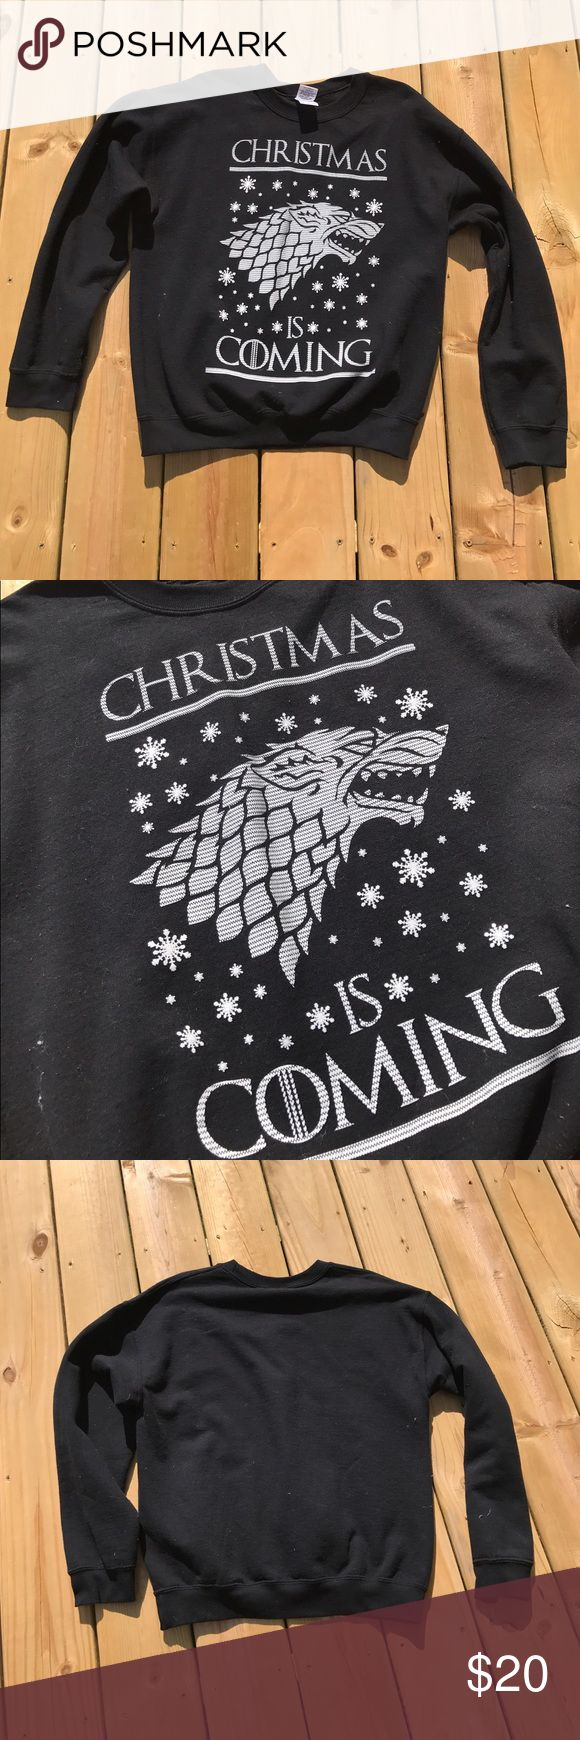 """Game of Thrones - Christmas is Coming Sweater. Game of Thrones - Christmas is Coming Sweater. Navy crew neck sweatshirt with house stark family cress on front and """"Christmas is Coming"""" in white screen print. Tops Sweatshirts & Hoodies"""